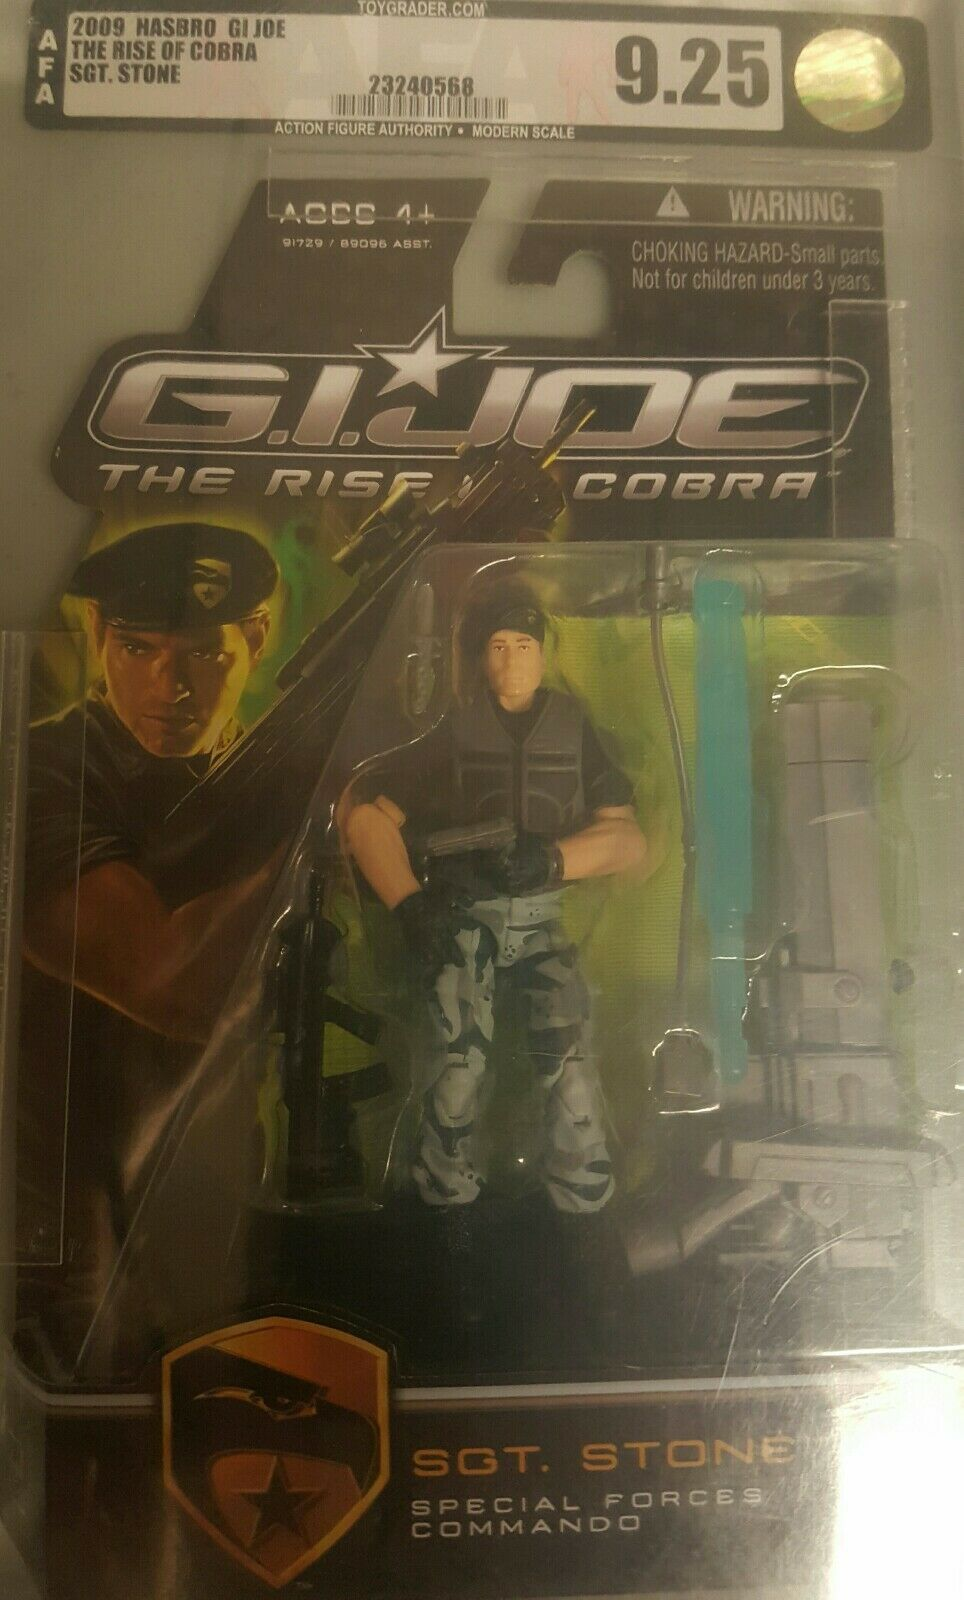 2009 Hasbro Gi Joe The Rise Of the Cobra AFA Graded Sgt Stone AFA 9.25